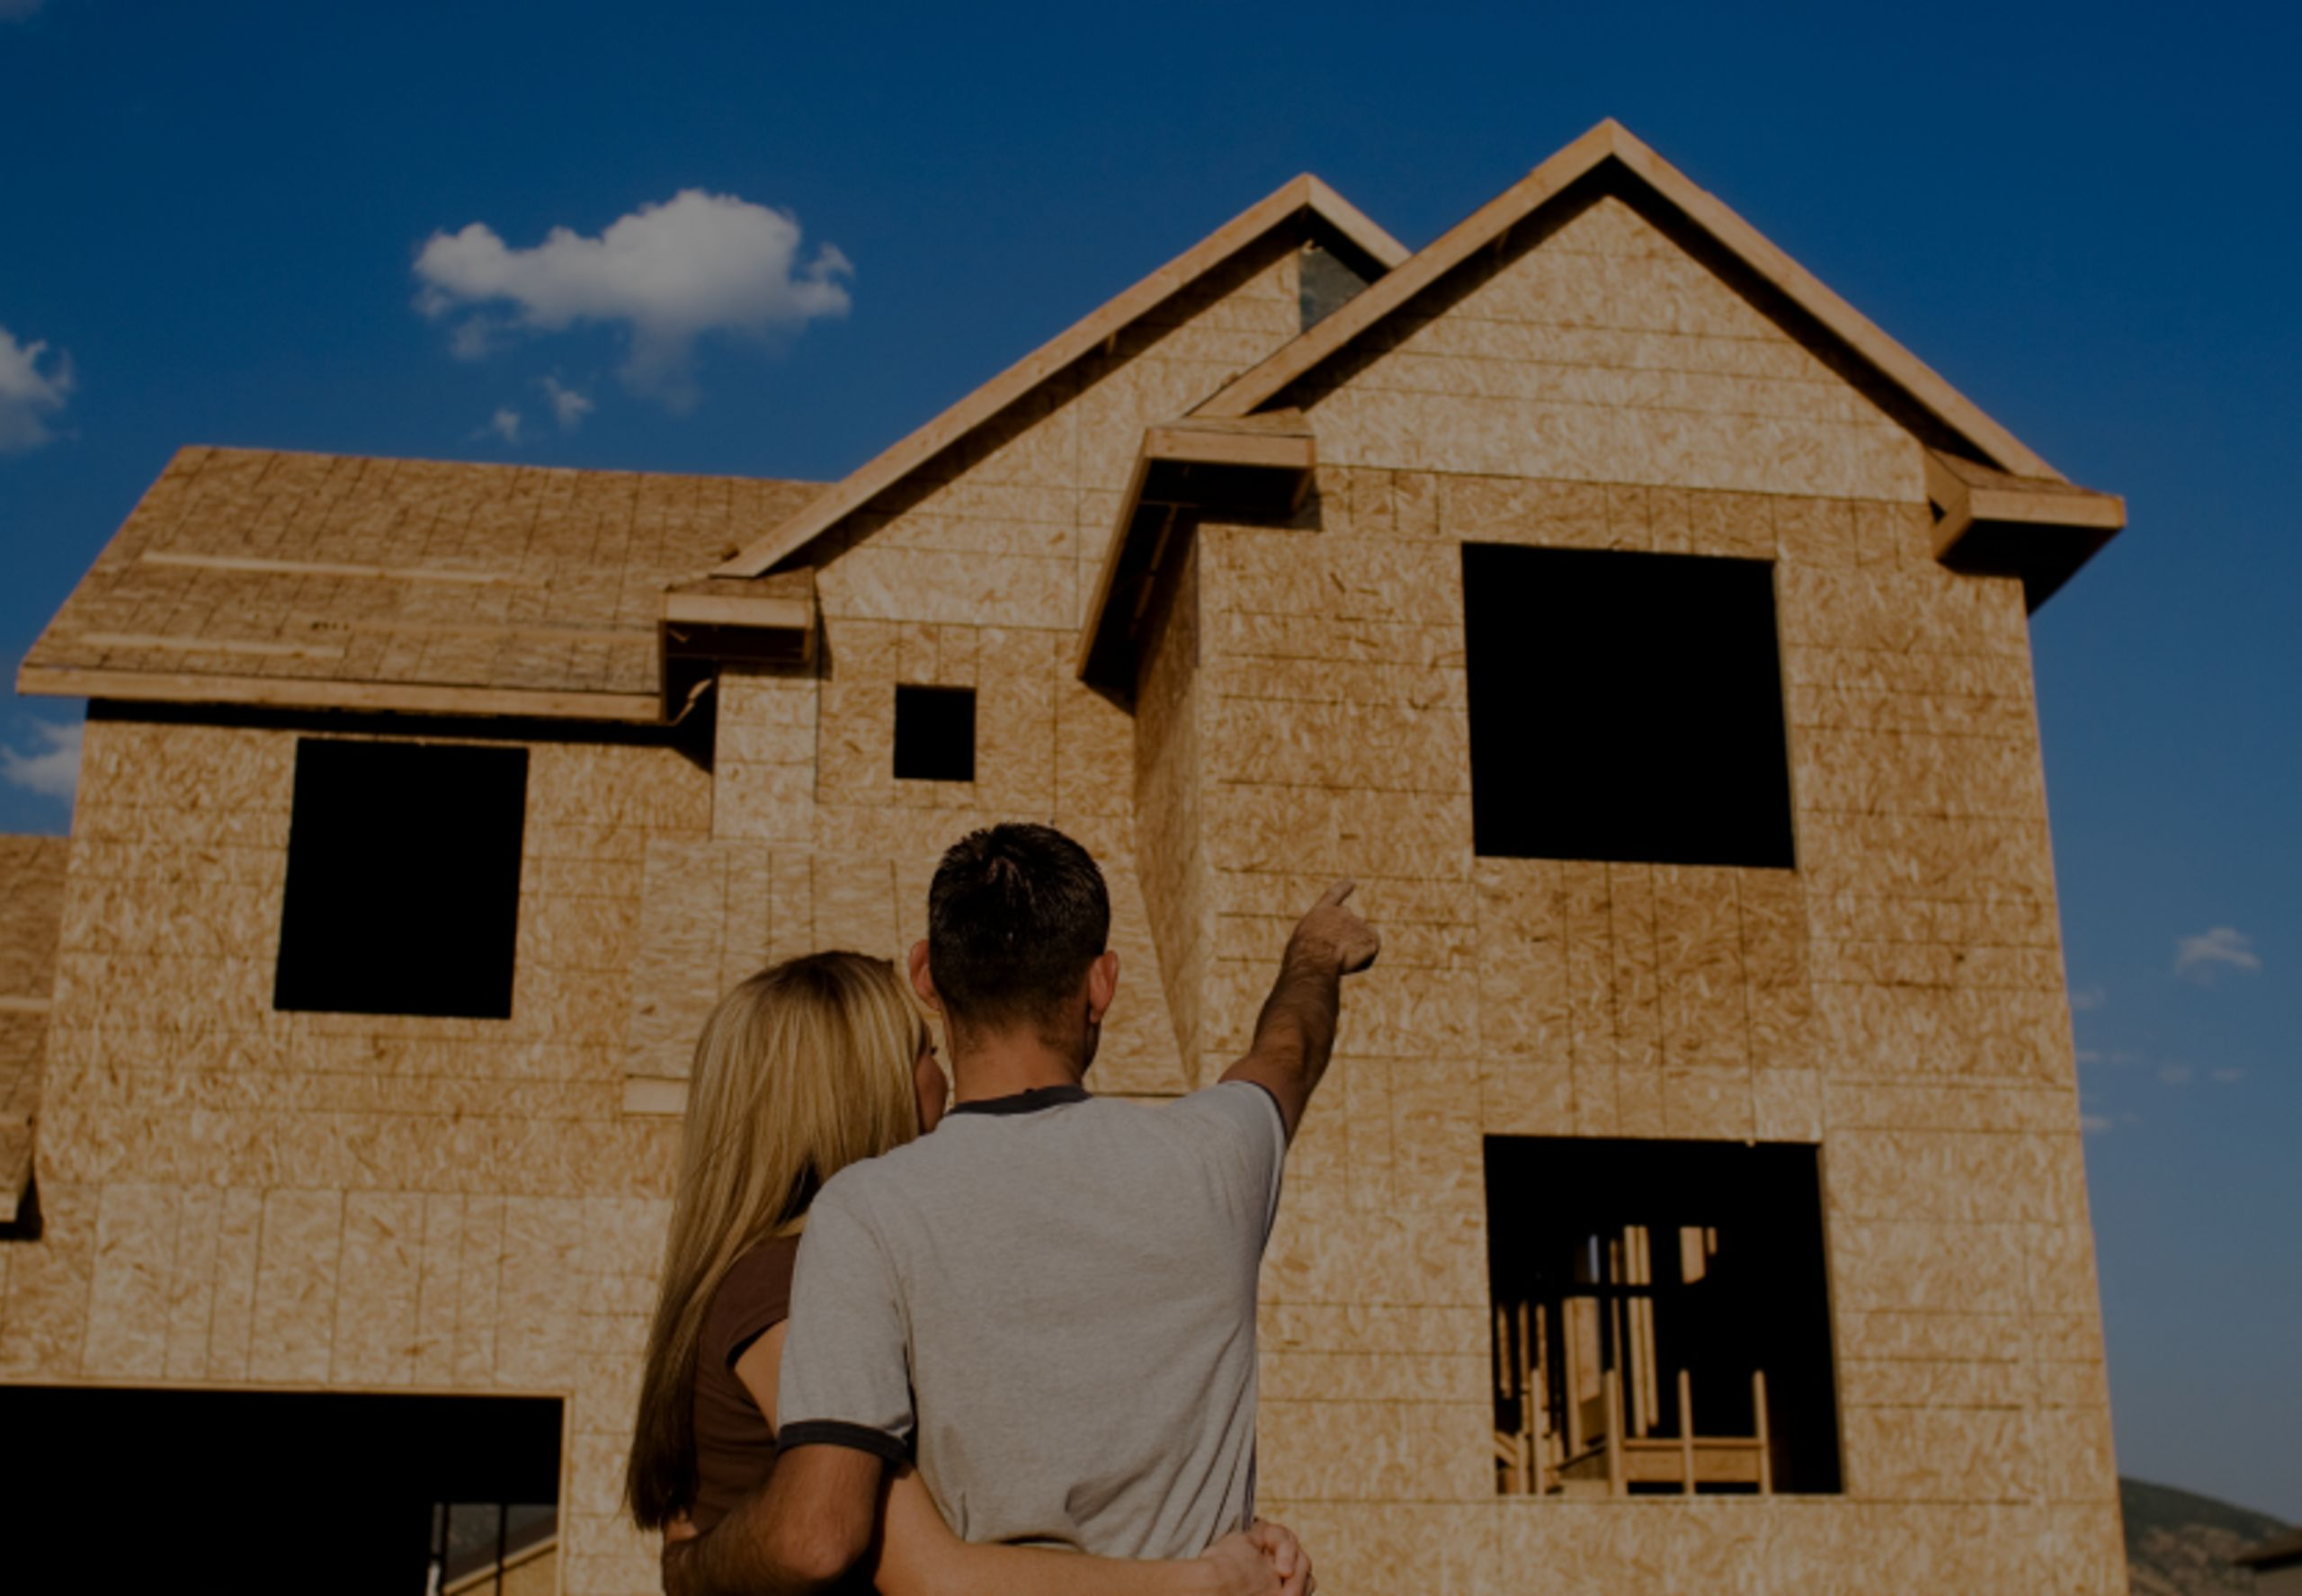 Reasons to buy a new build home